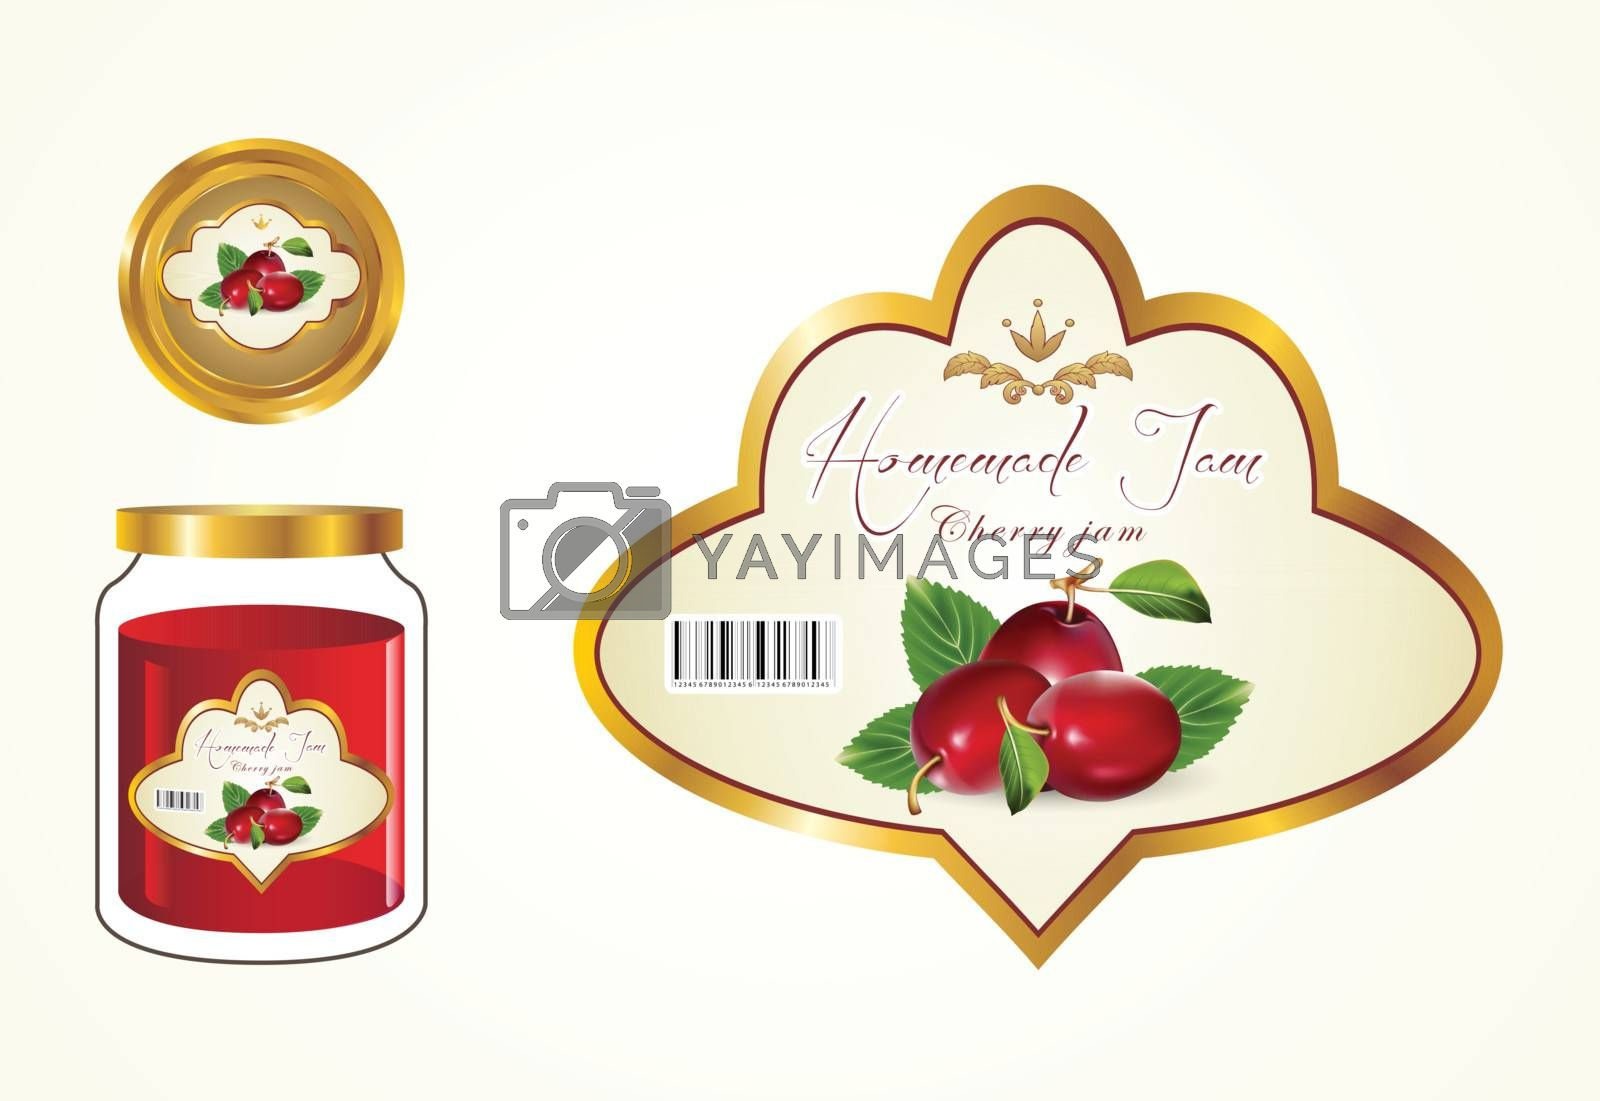 Labels, fruit jam, jam jars and lids to see the label.